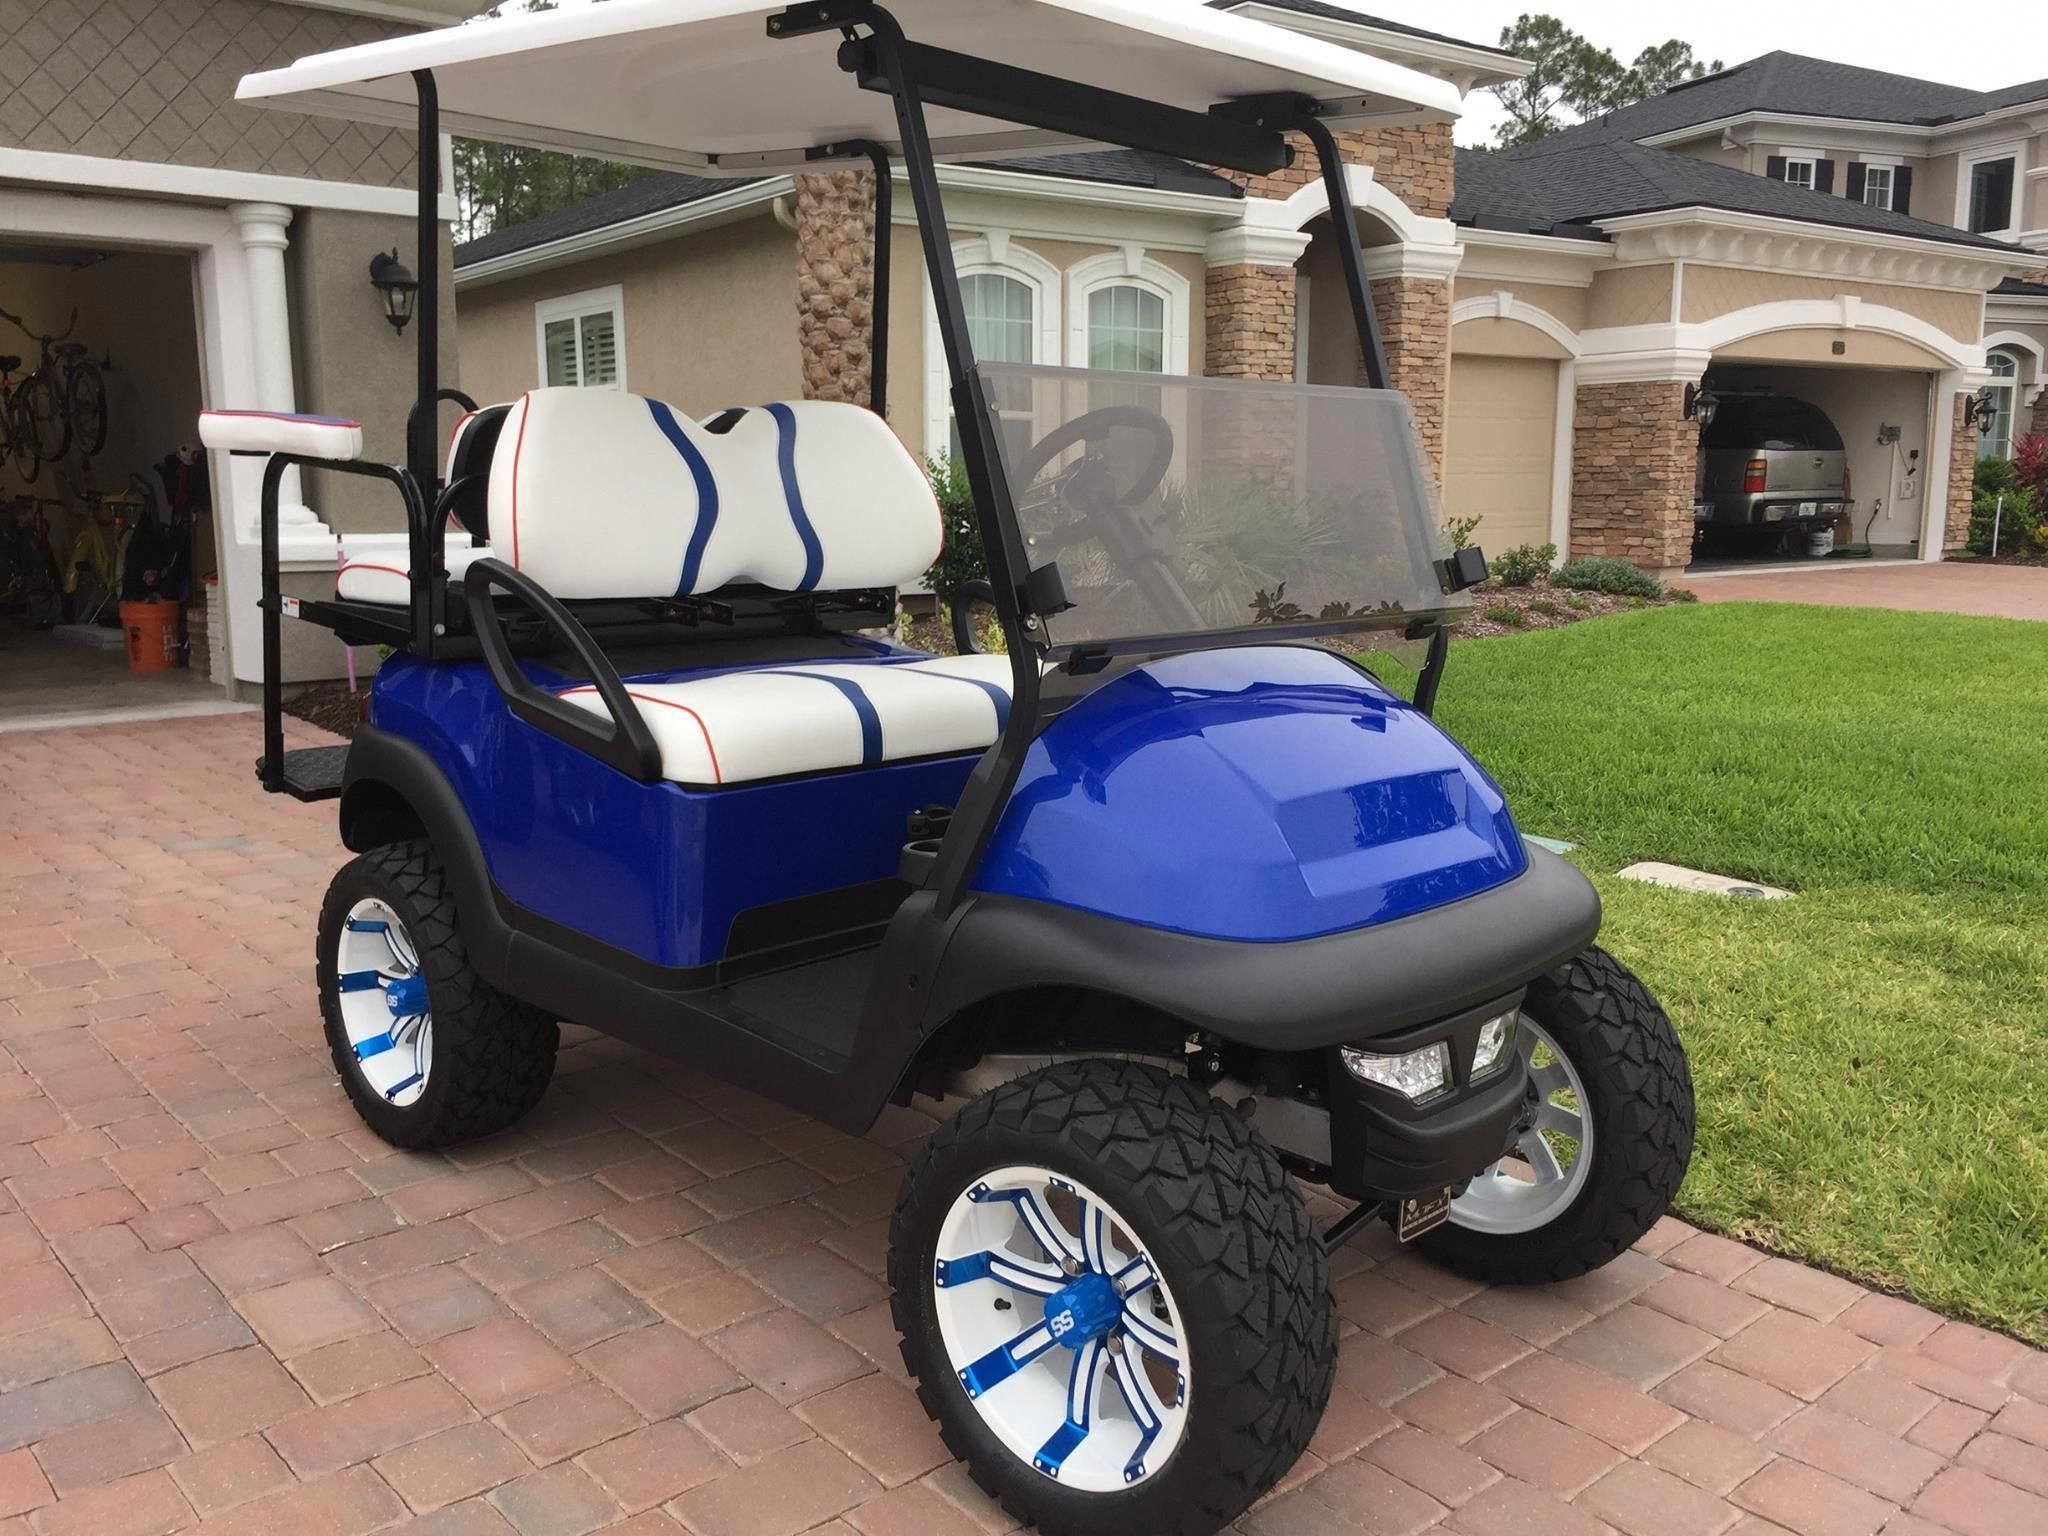 Royal Blue Club Car Precedent Golf Cart With Custom White And Blue Wheels And Seating Golf Carts Custom Golf Carts Club Car Golf Cart